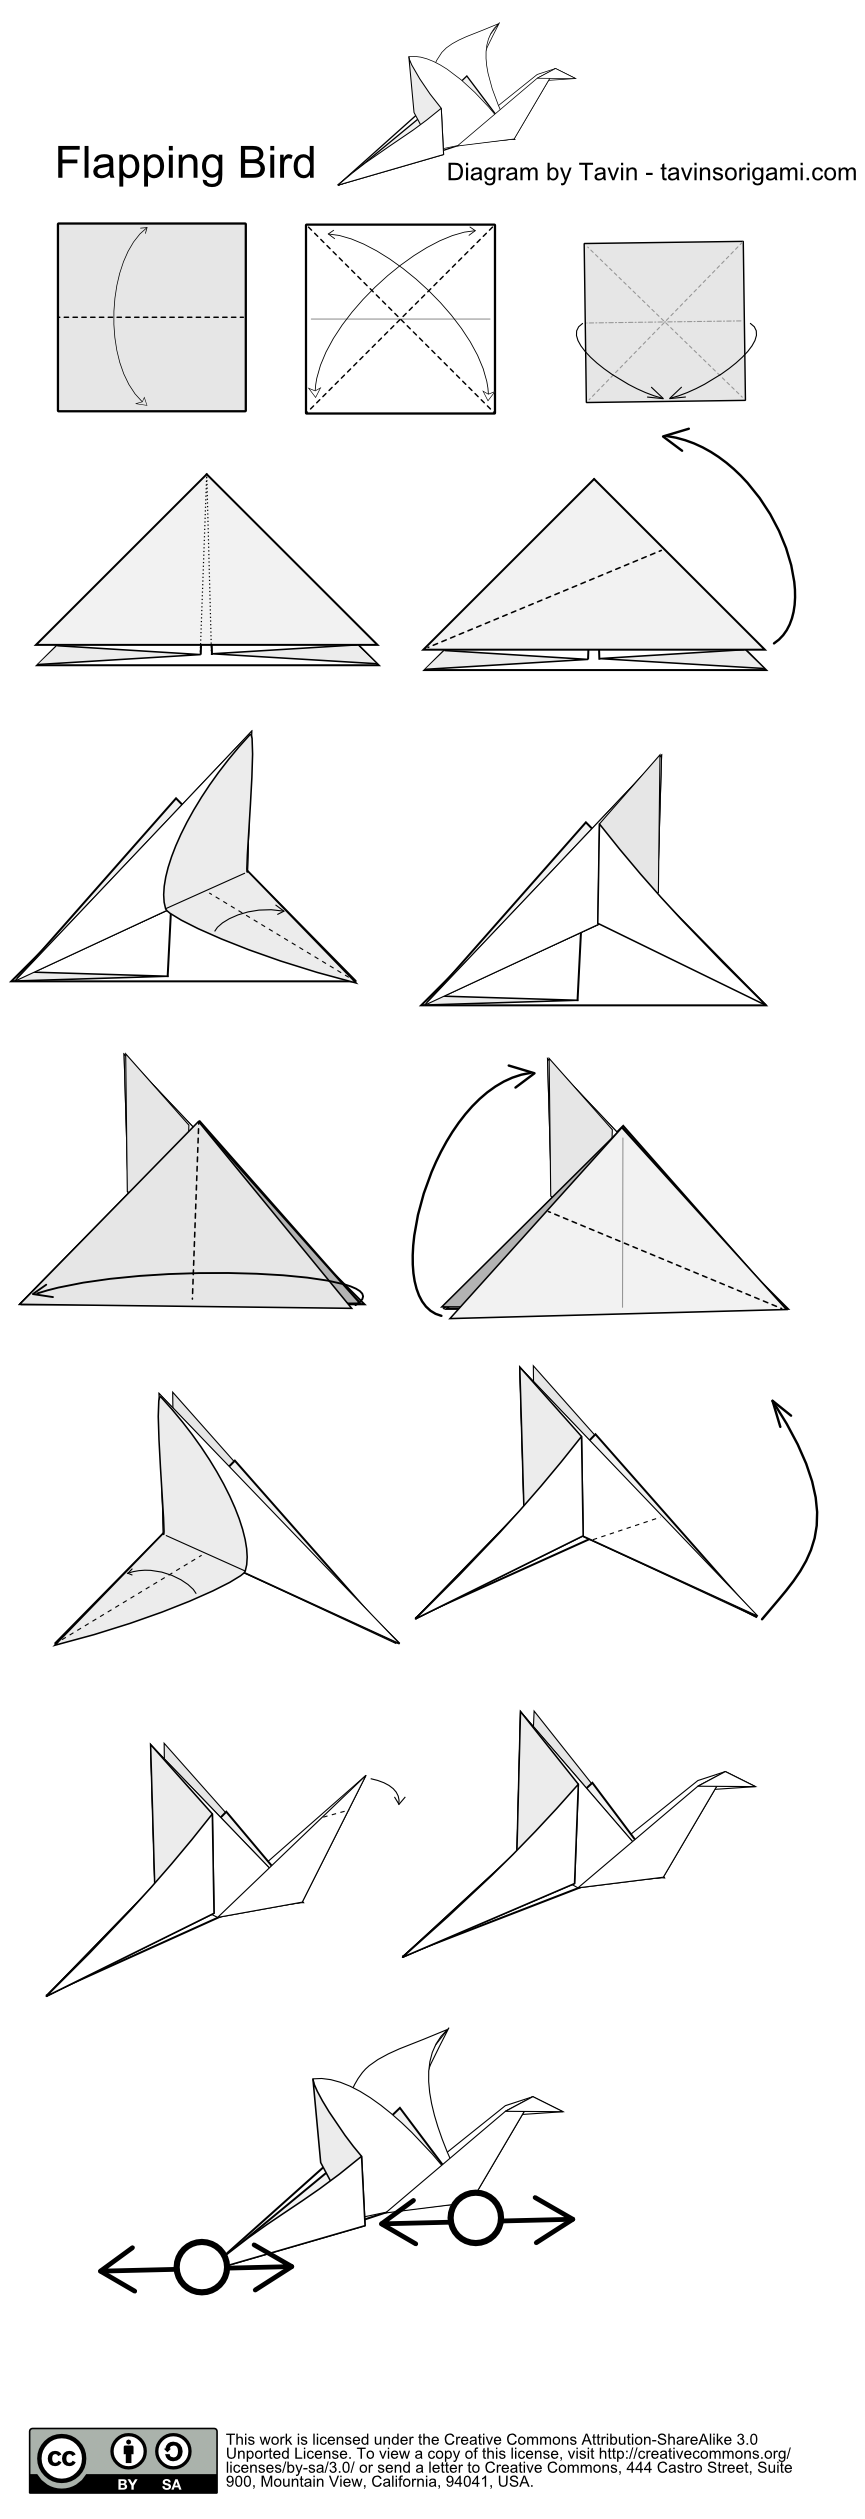 Flapping Bird Origami Instructions Tavins Diagram Of The